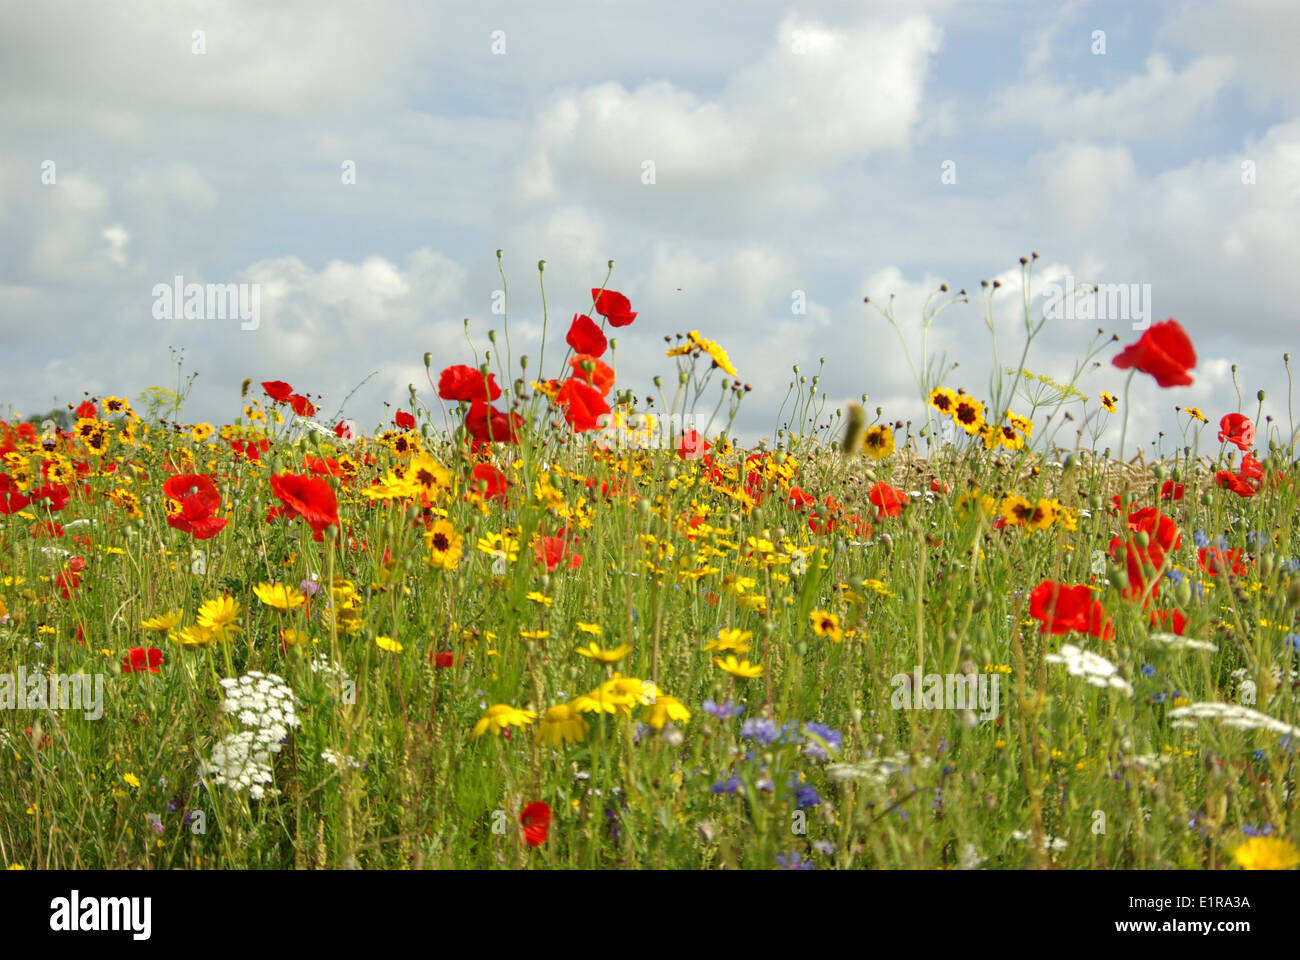 A Meadow With Different Kinds Of Wild Flowers Like Poppies German